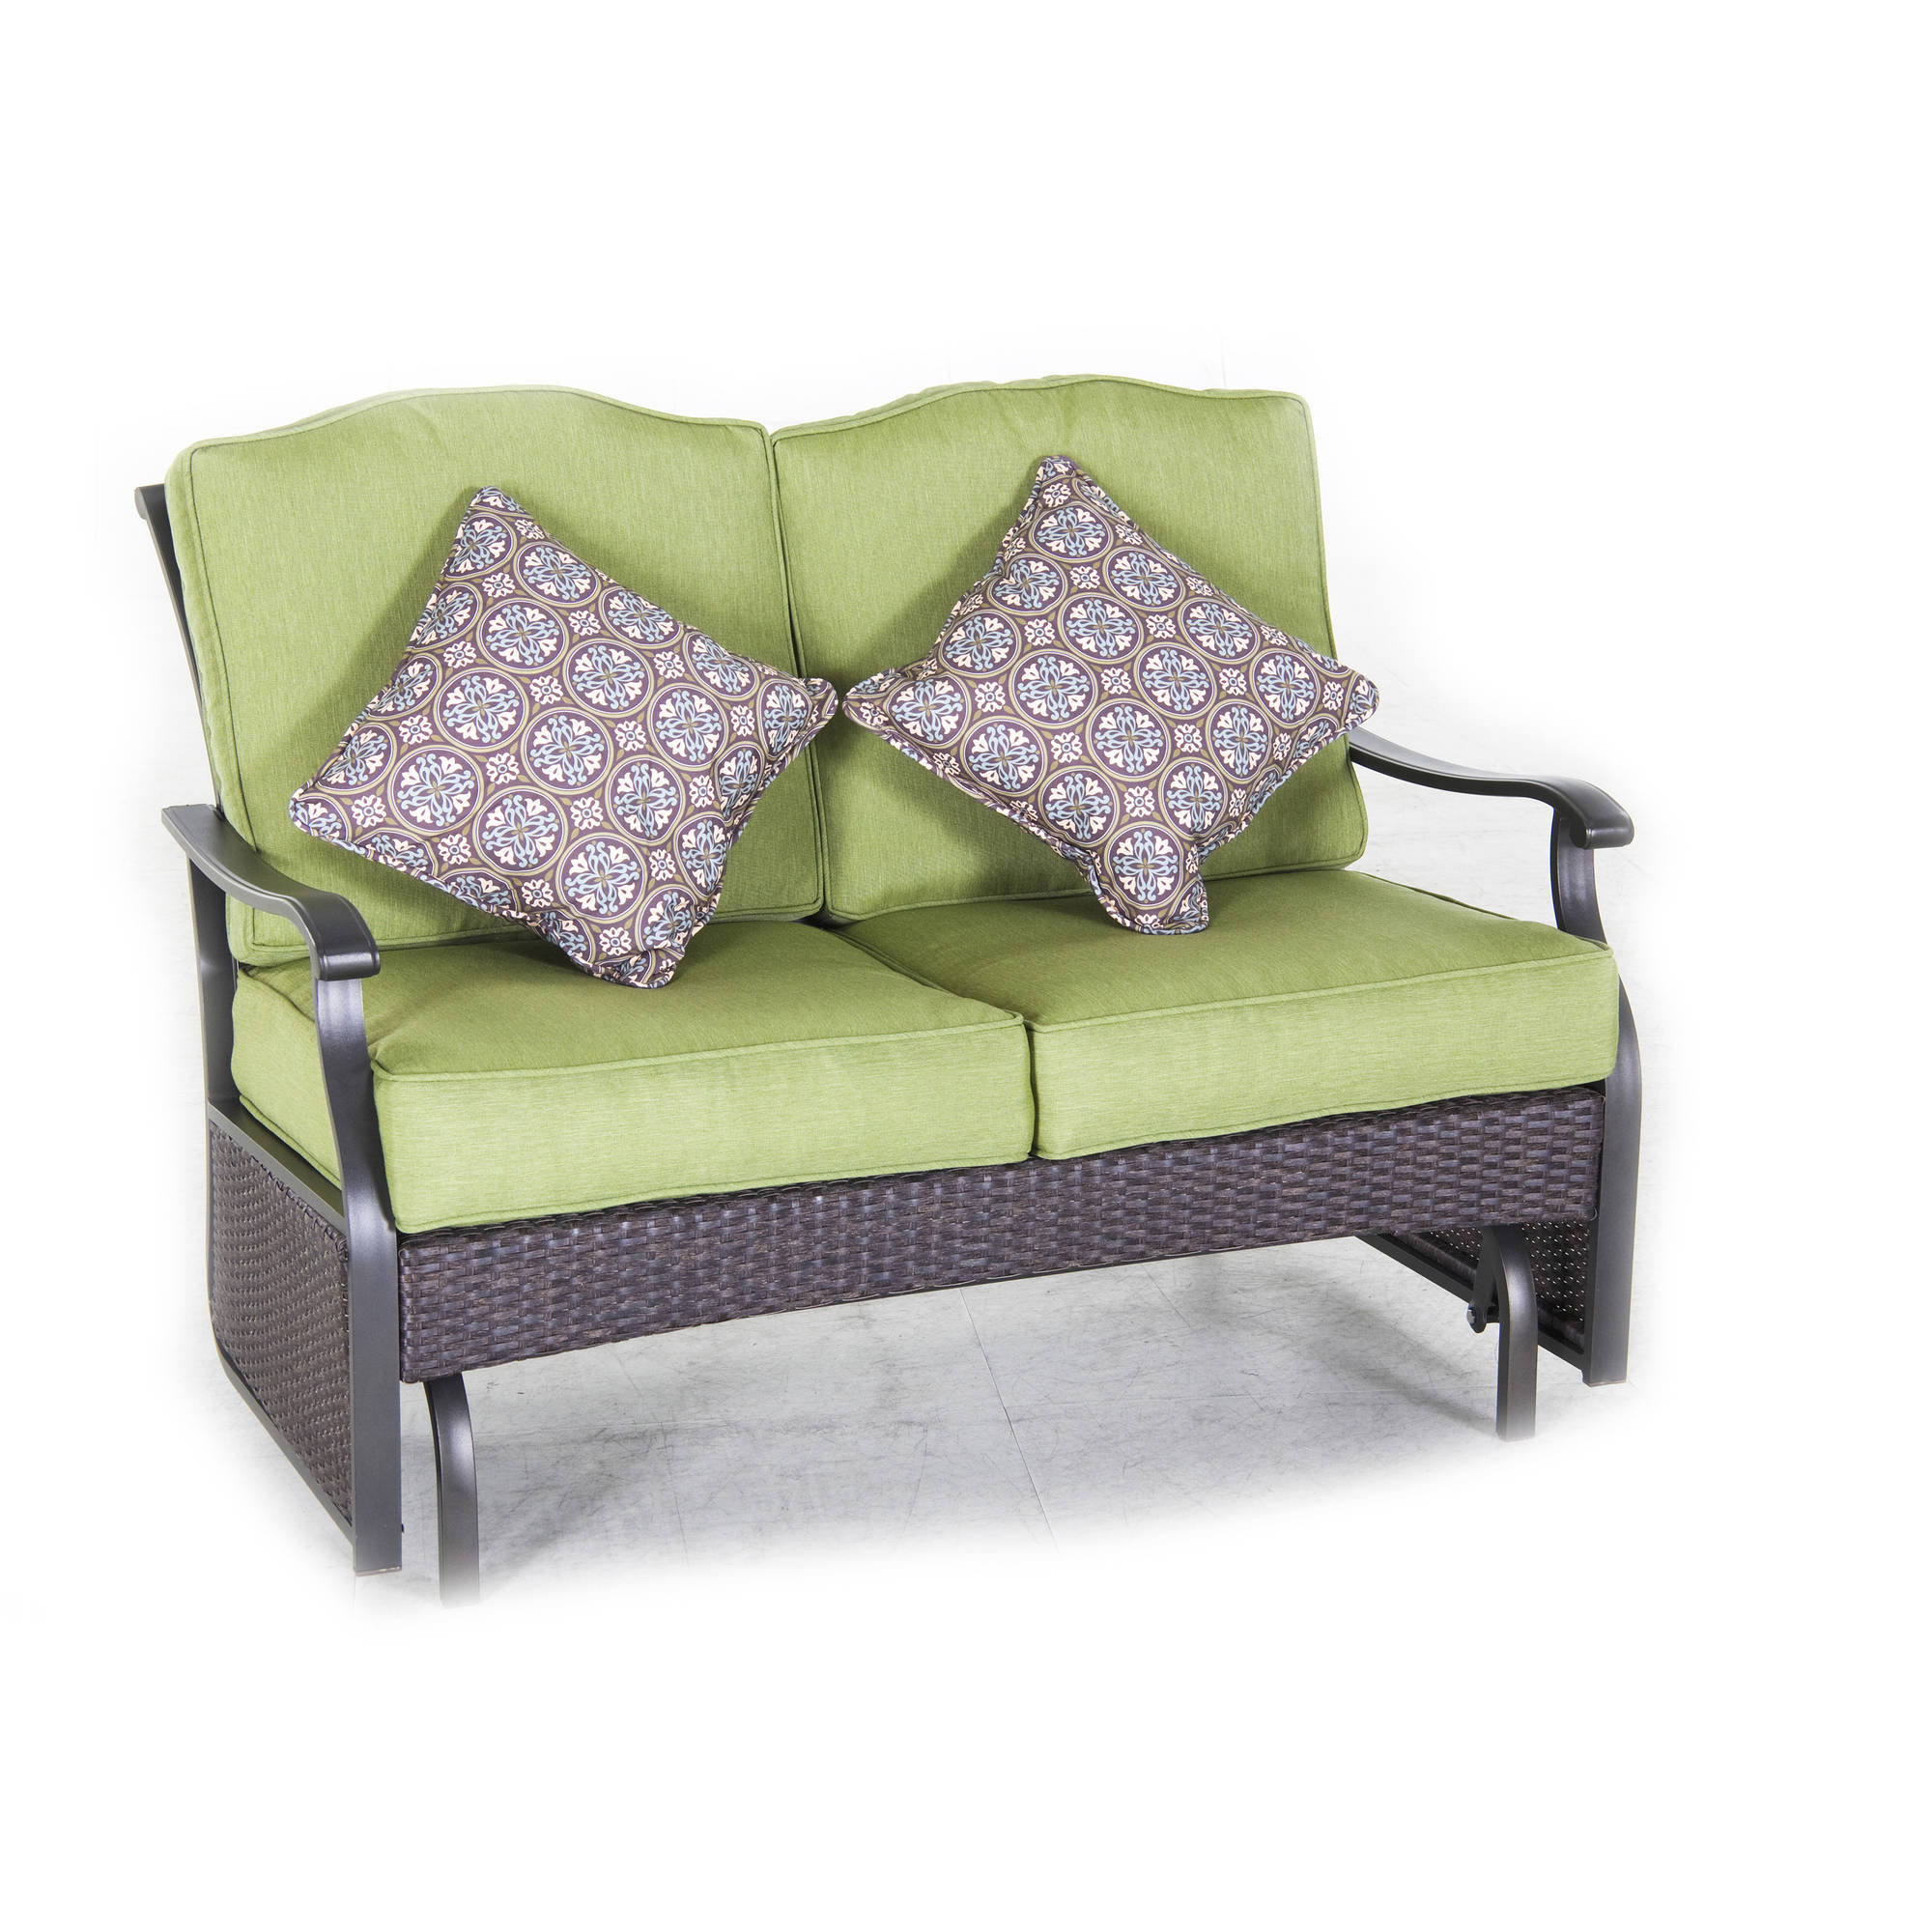 Better Homes And Gardens Providence Outdoor Loveseat Glider Bench, Seats 2    Walmart.com